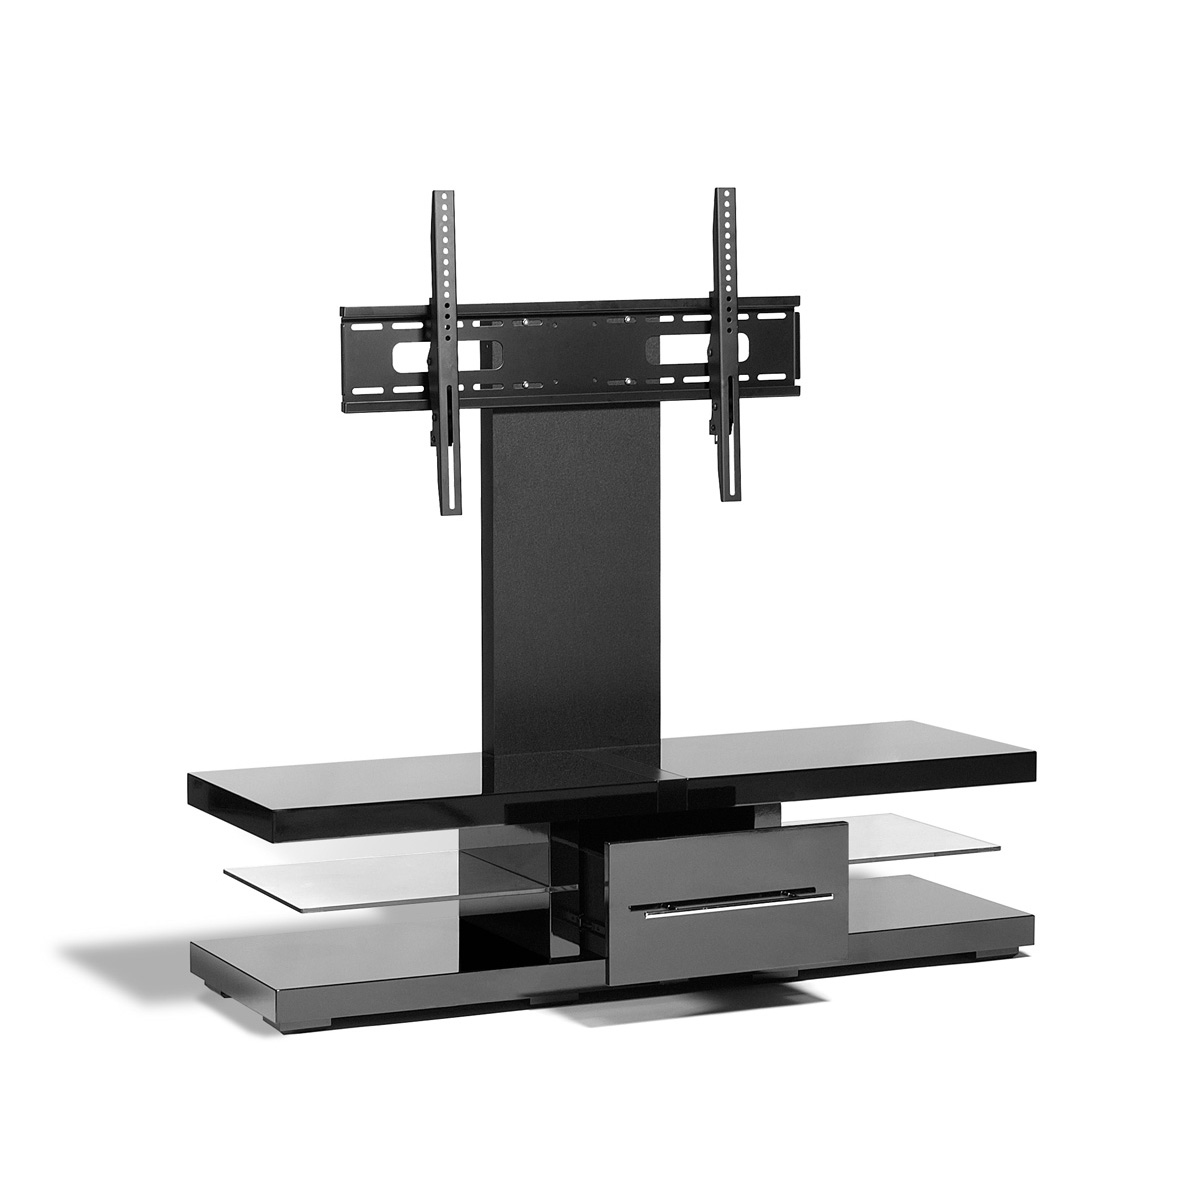 Black Metallic Flat Screen Tv Stand Amp Mount 42 60 Inch